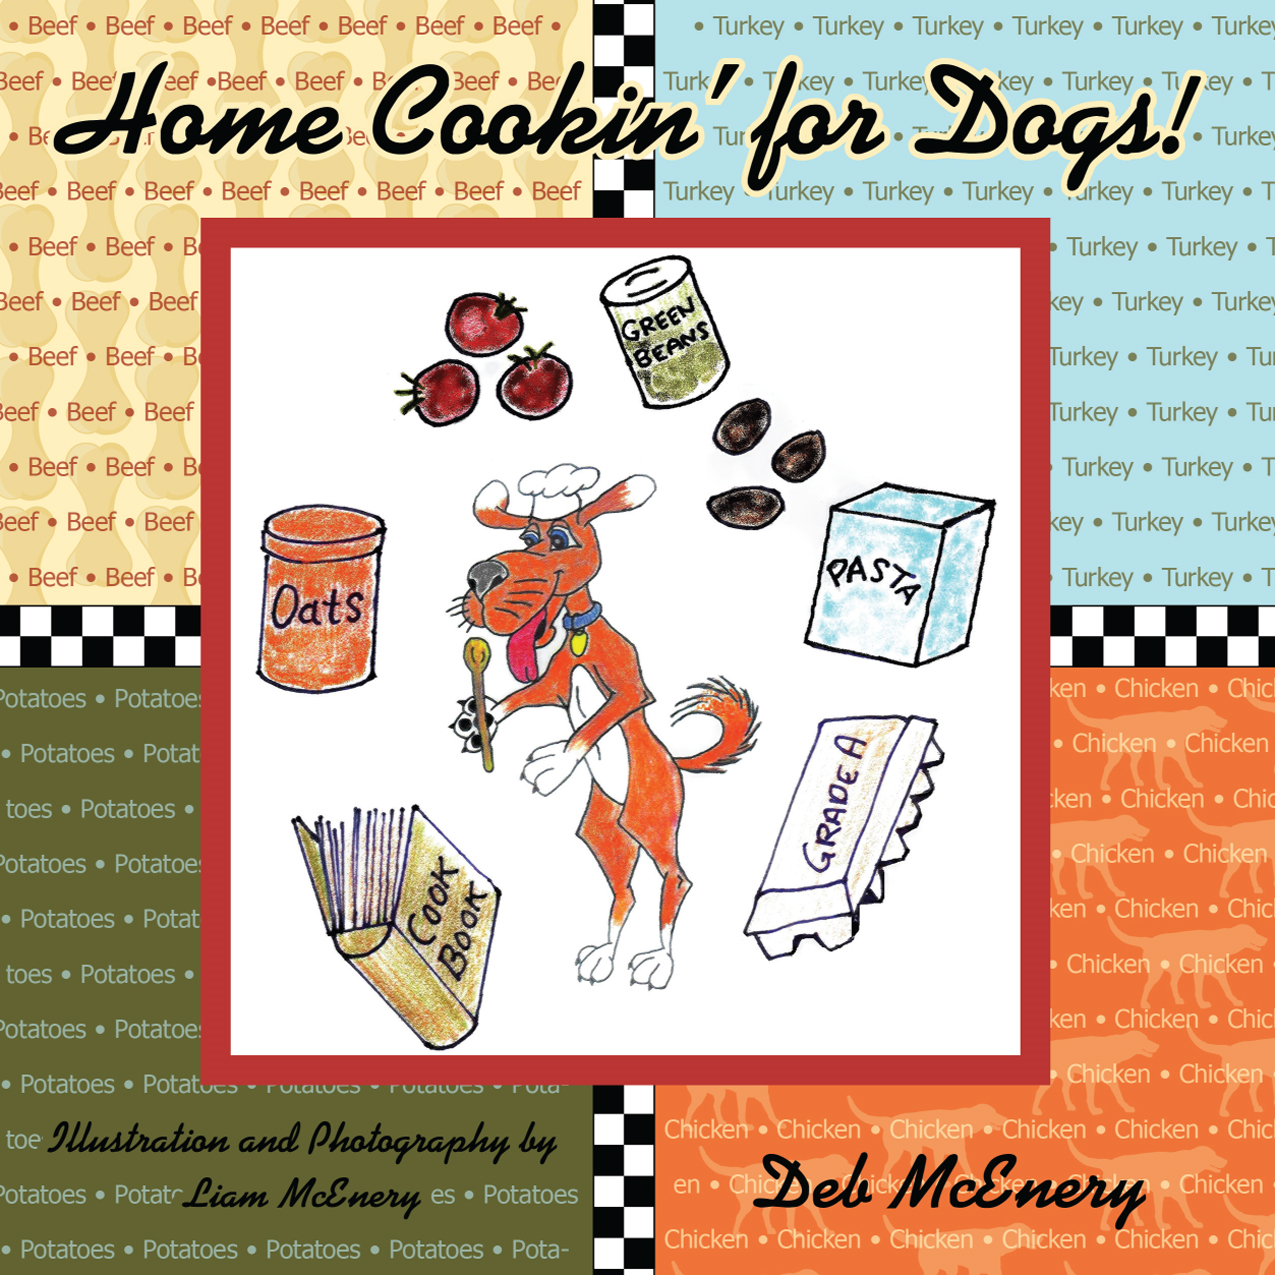 Home Cookin' for Dogs!